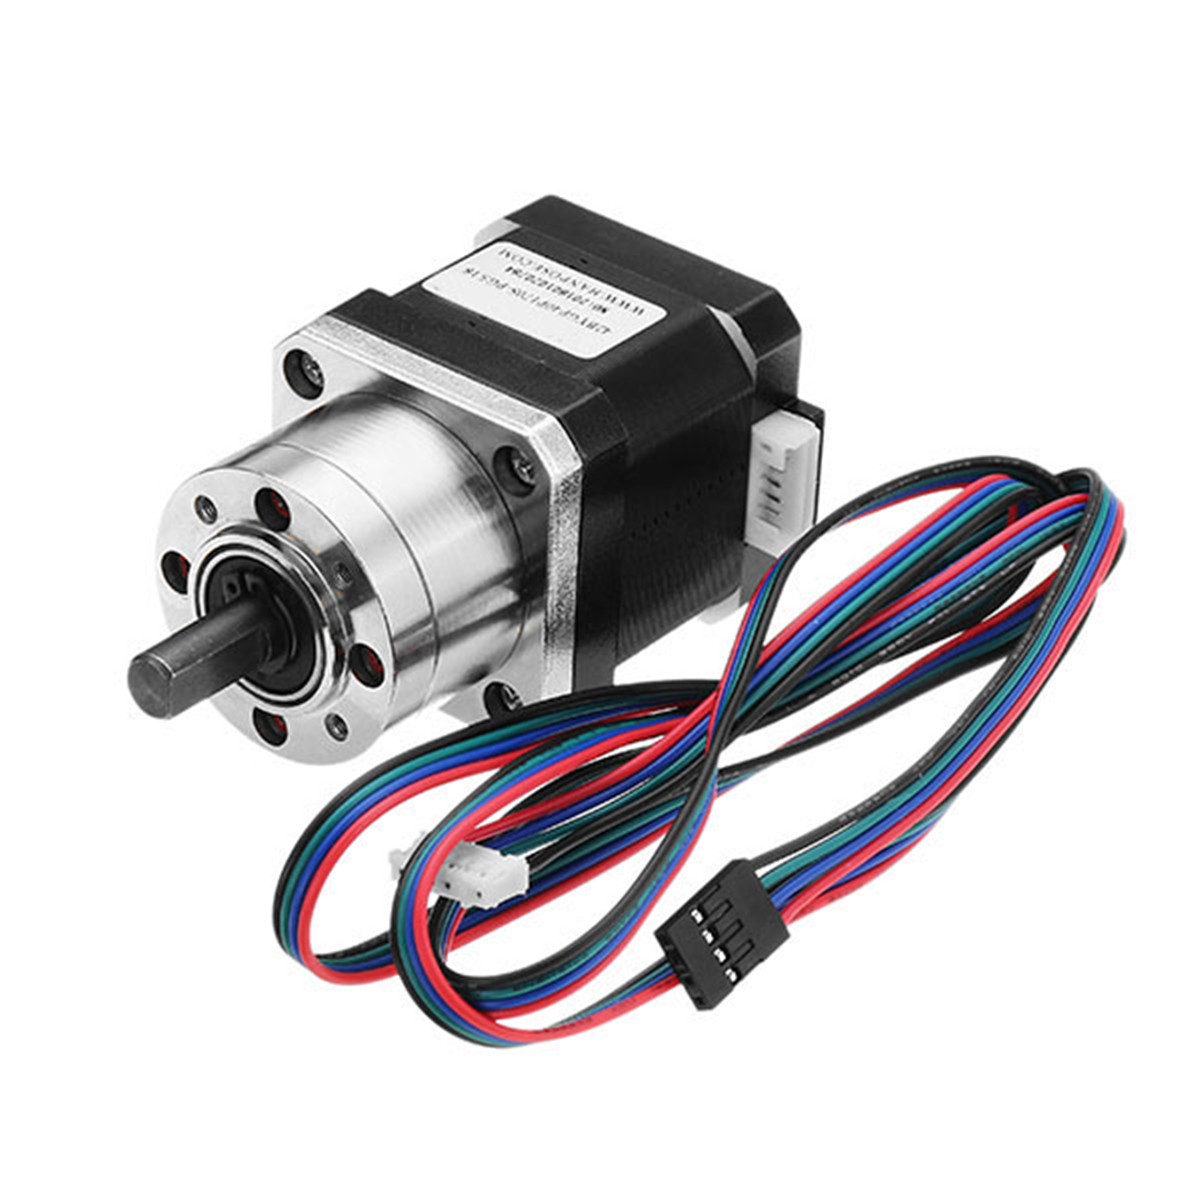 42BYGP40 Nema 17 Stepper Motor 42 Motor Extruder Gear Stepper Motor DC 12V 5W New 28byj 48 12v 4 phase 5 wire stepper motor 28byj48 12v gear stepper motor